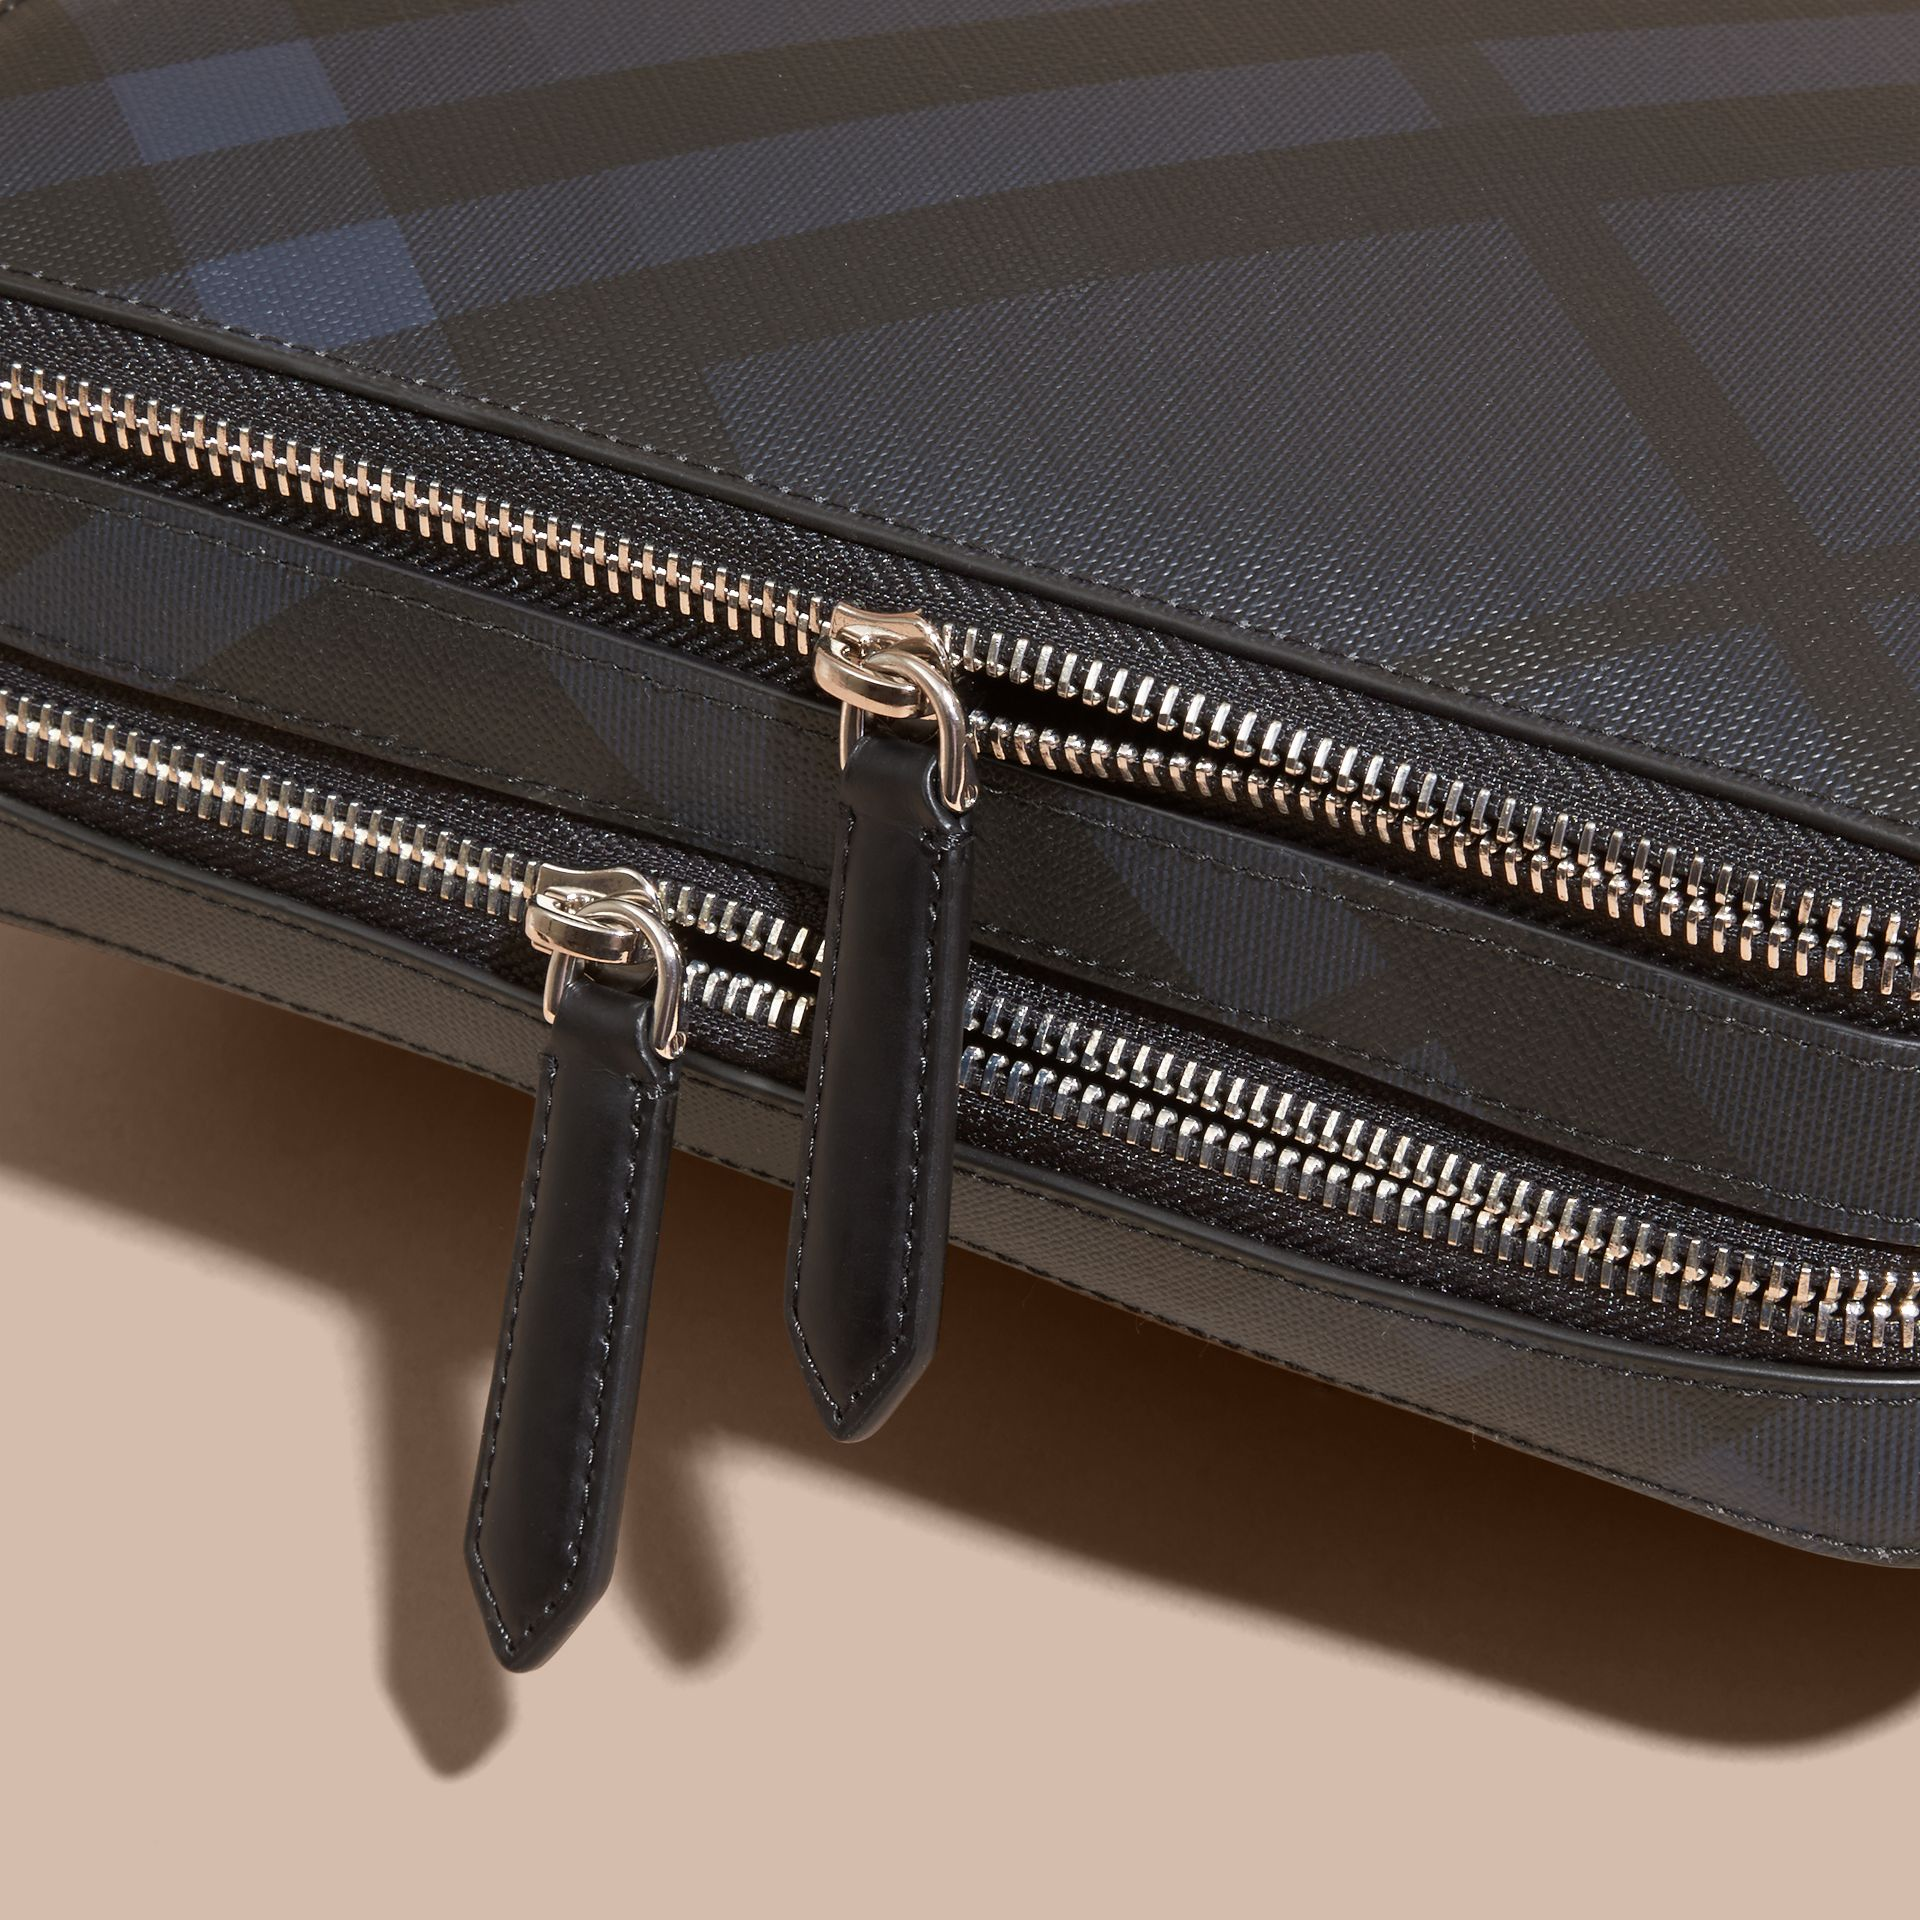 Leather-trimmed London Check Pouch Navy/black - gallery image 2